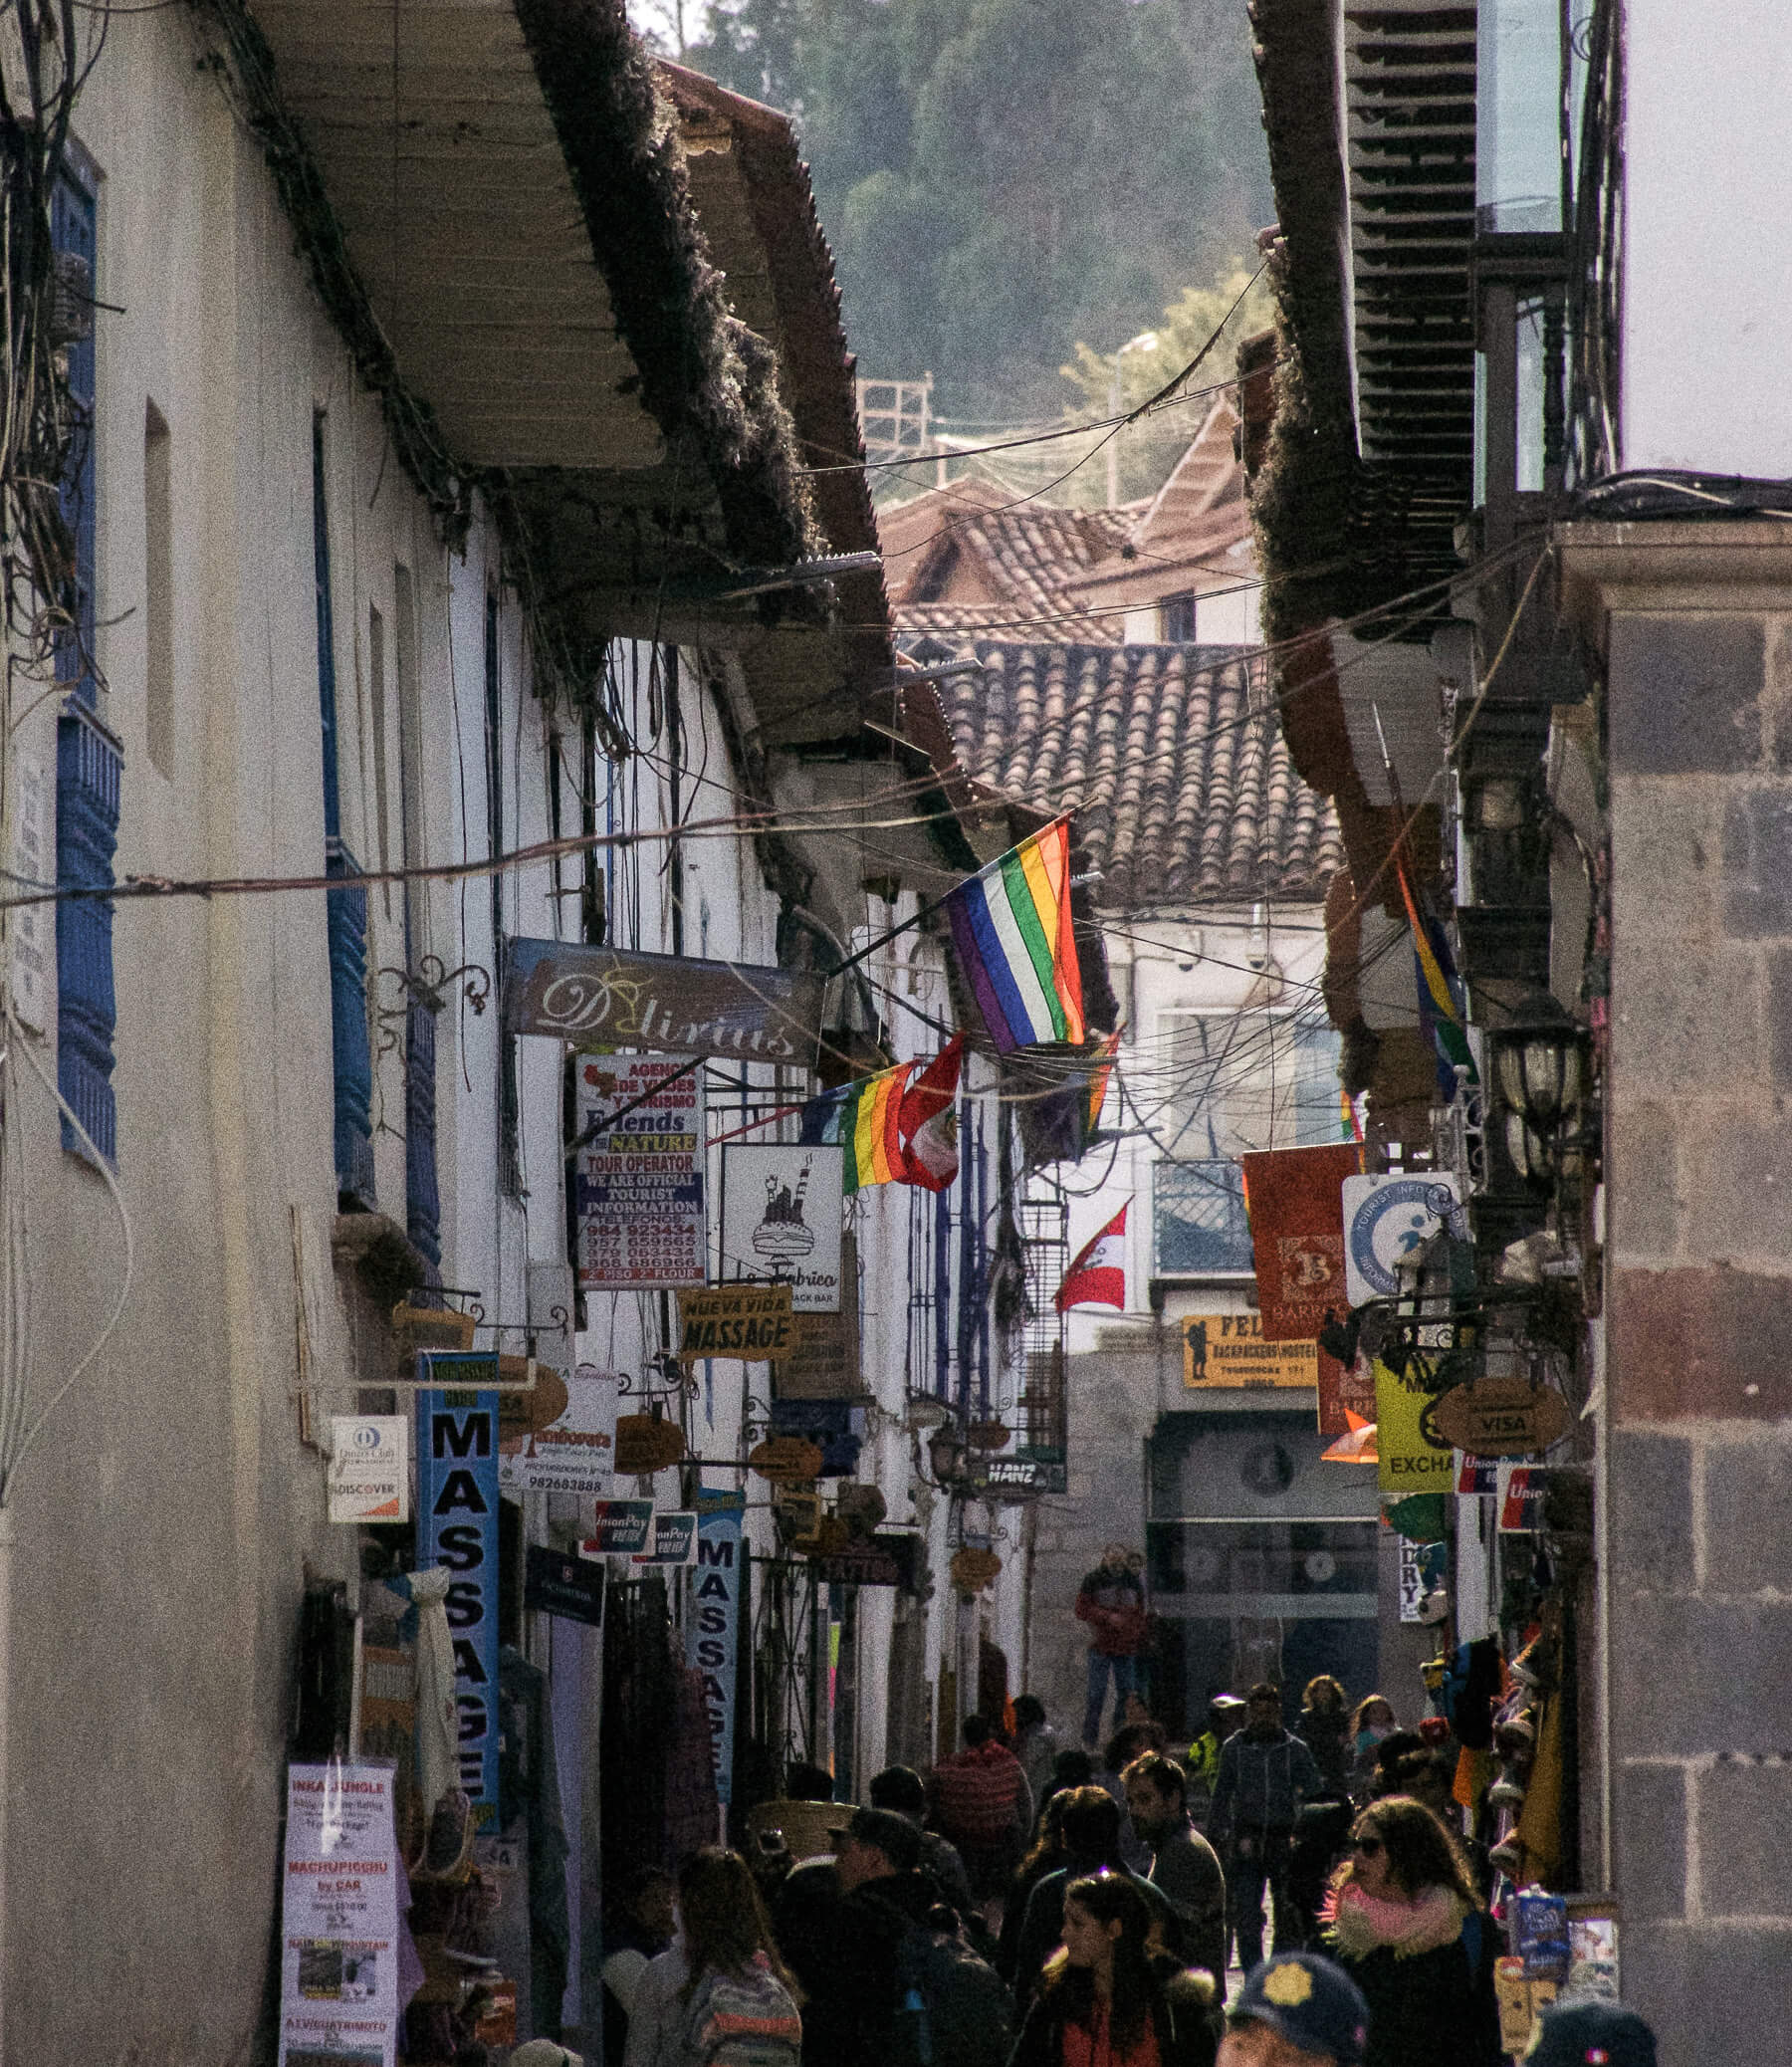 Looking down a small alleyway with signs and flags sticking out from the walls